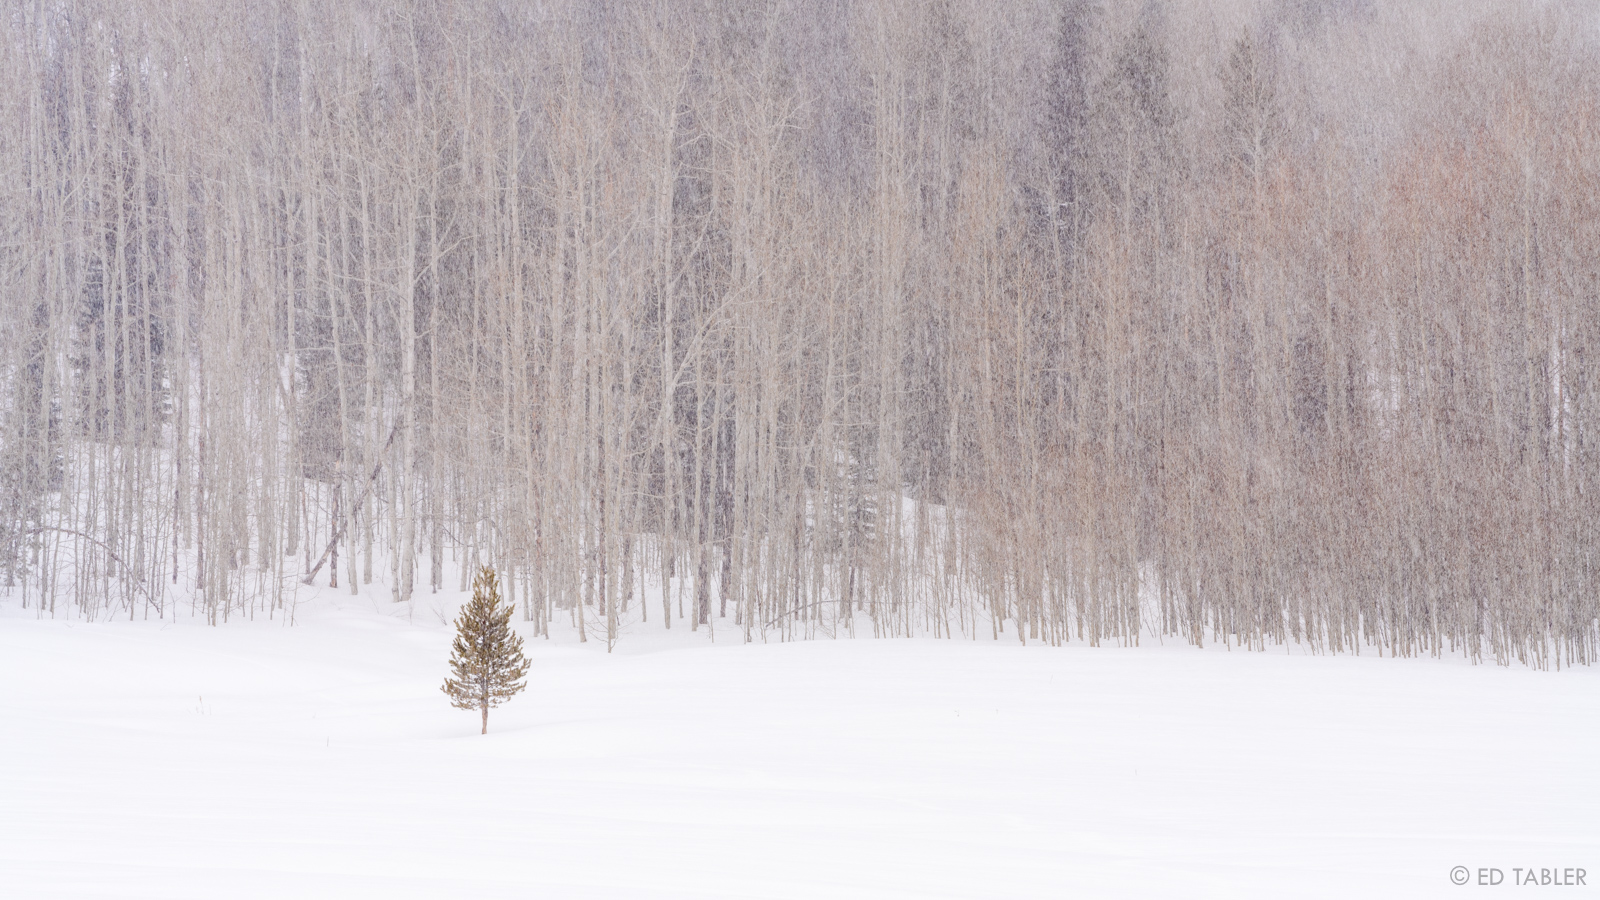 One small tree, not only managing to grow, but seeming to thrive, on its own, just outside of the forest. The falling snow and...